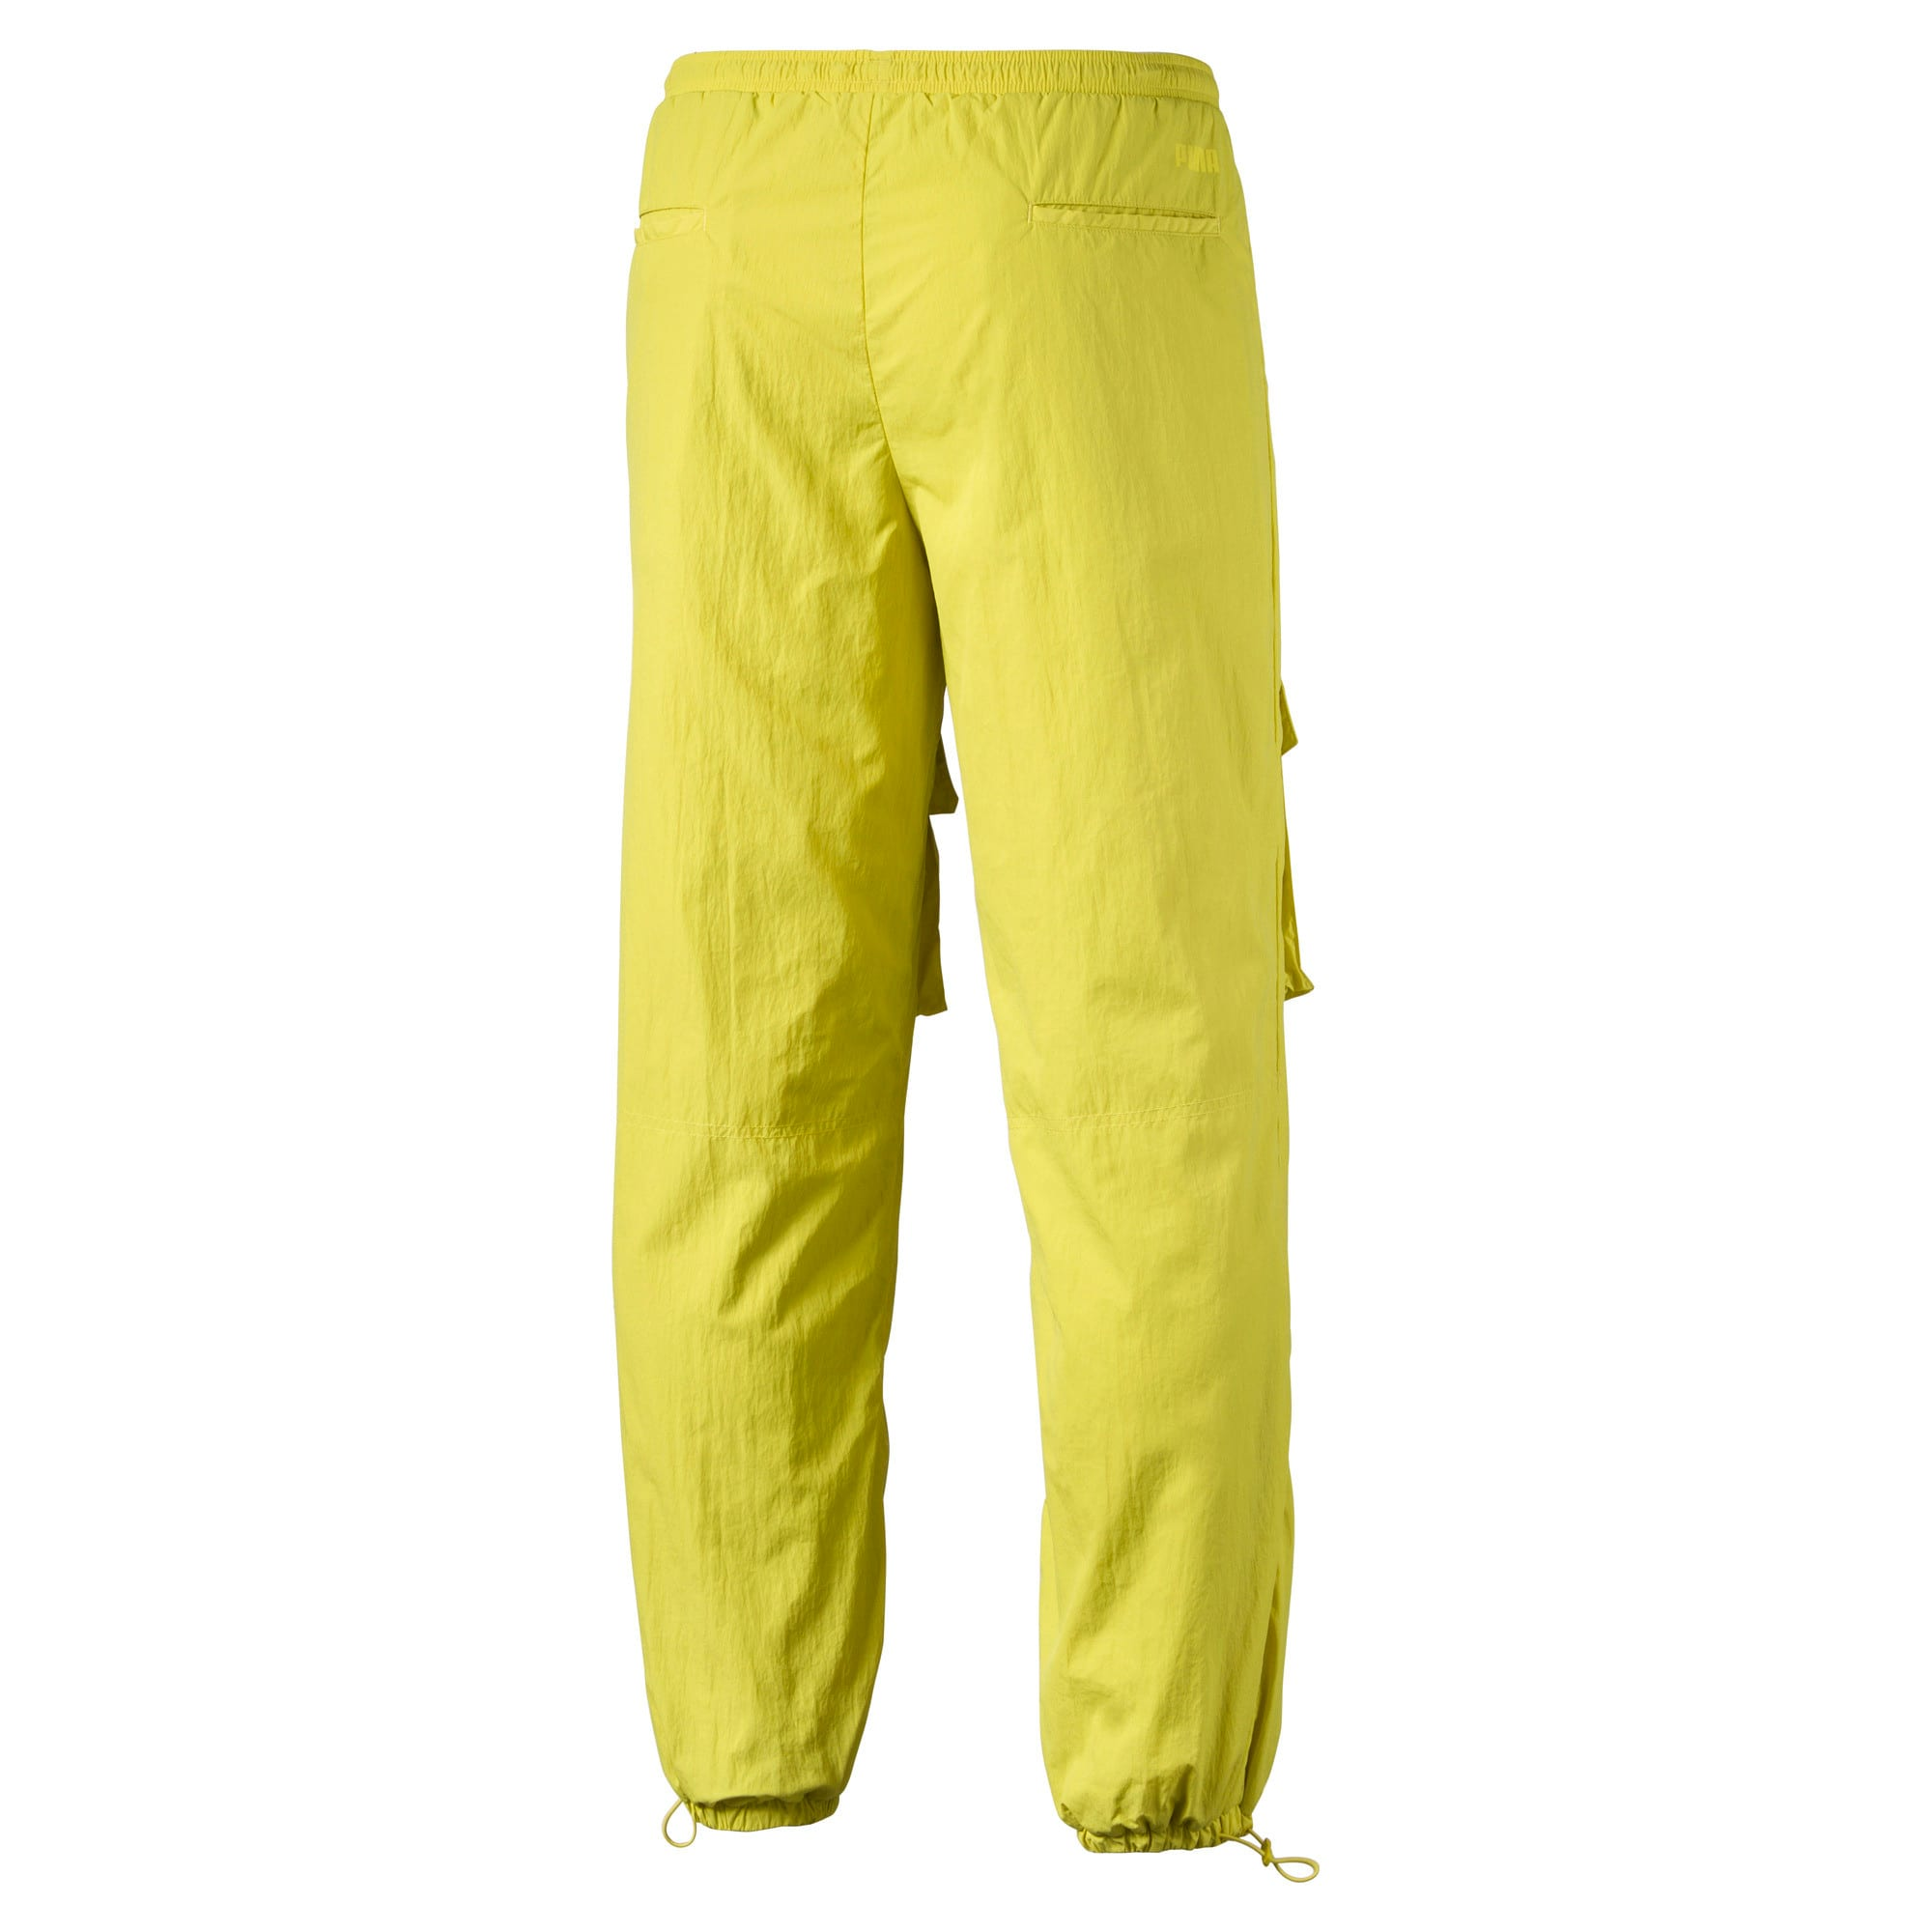 Thumbnail 5 of Men's Woven Alteration Pants, Celery, medium